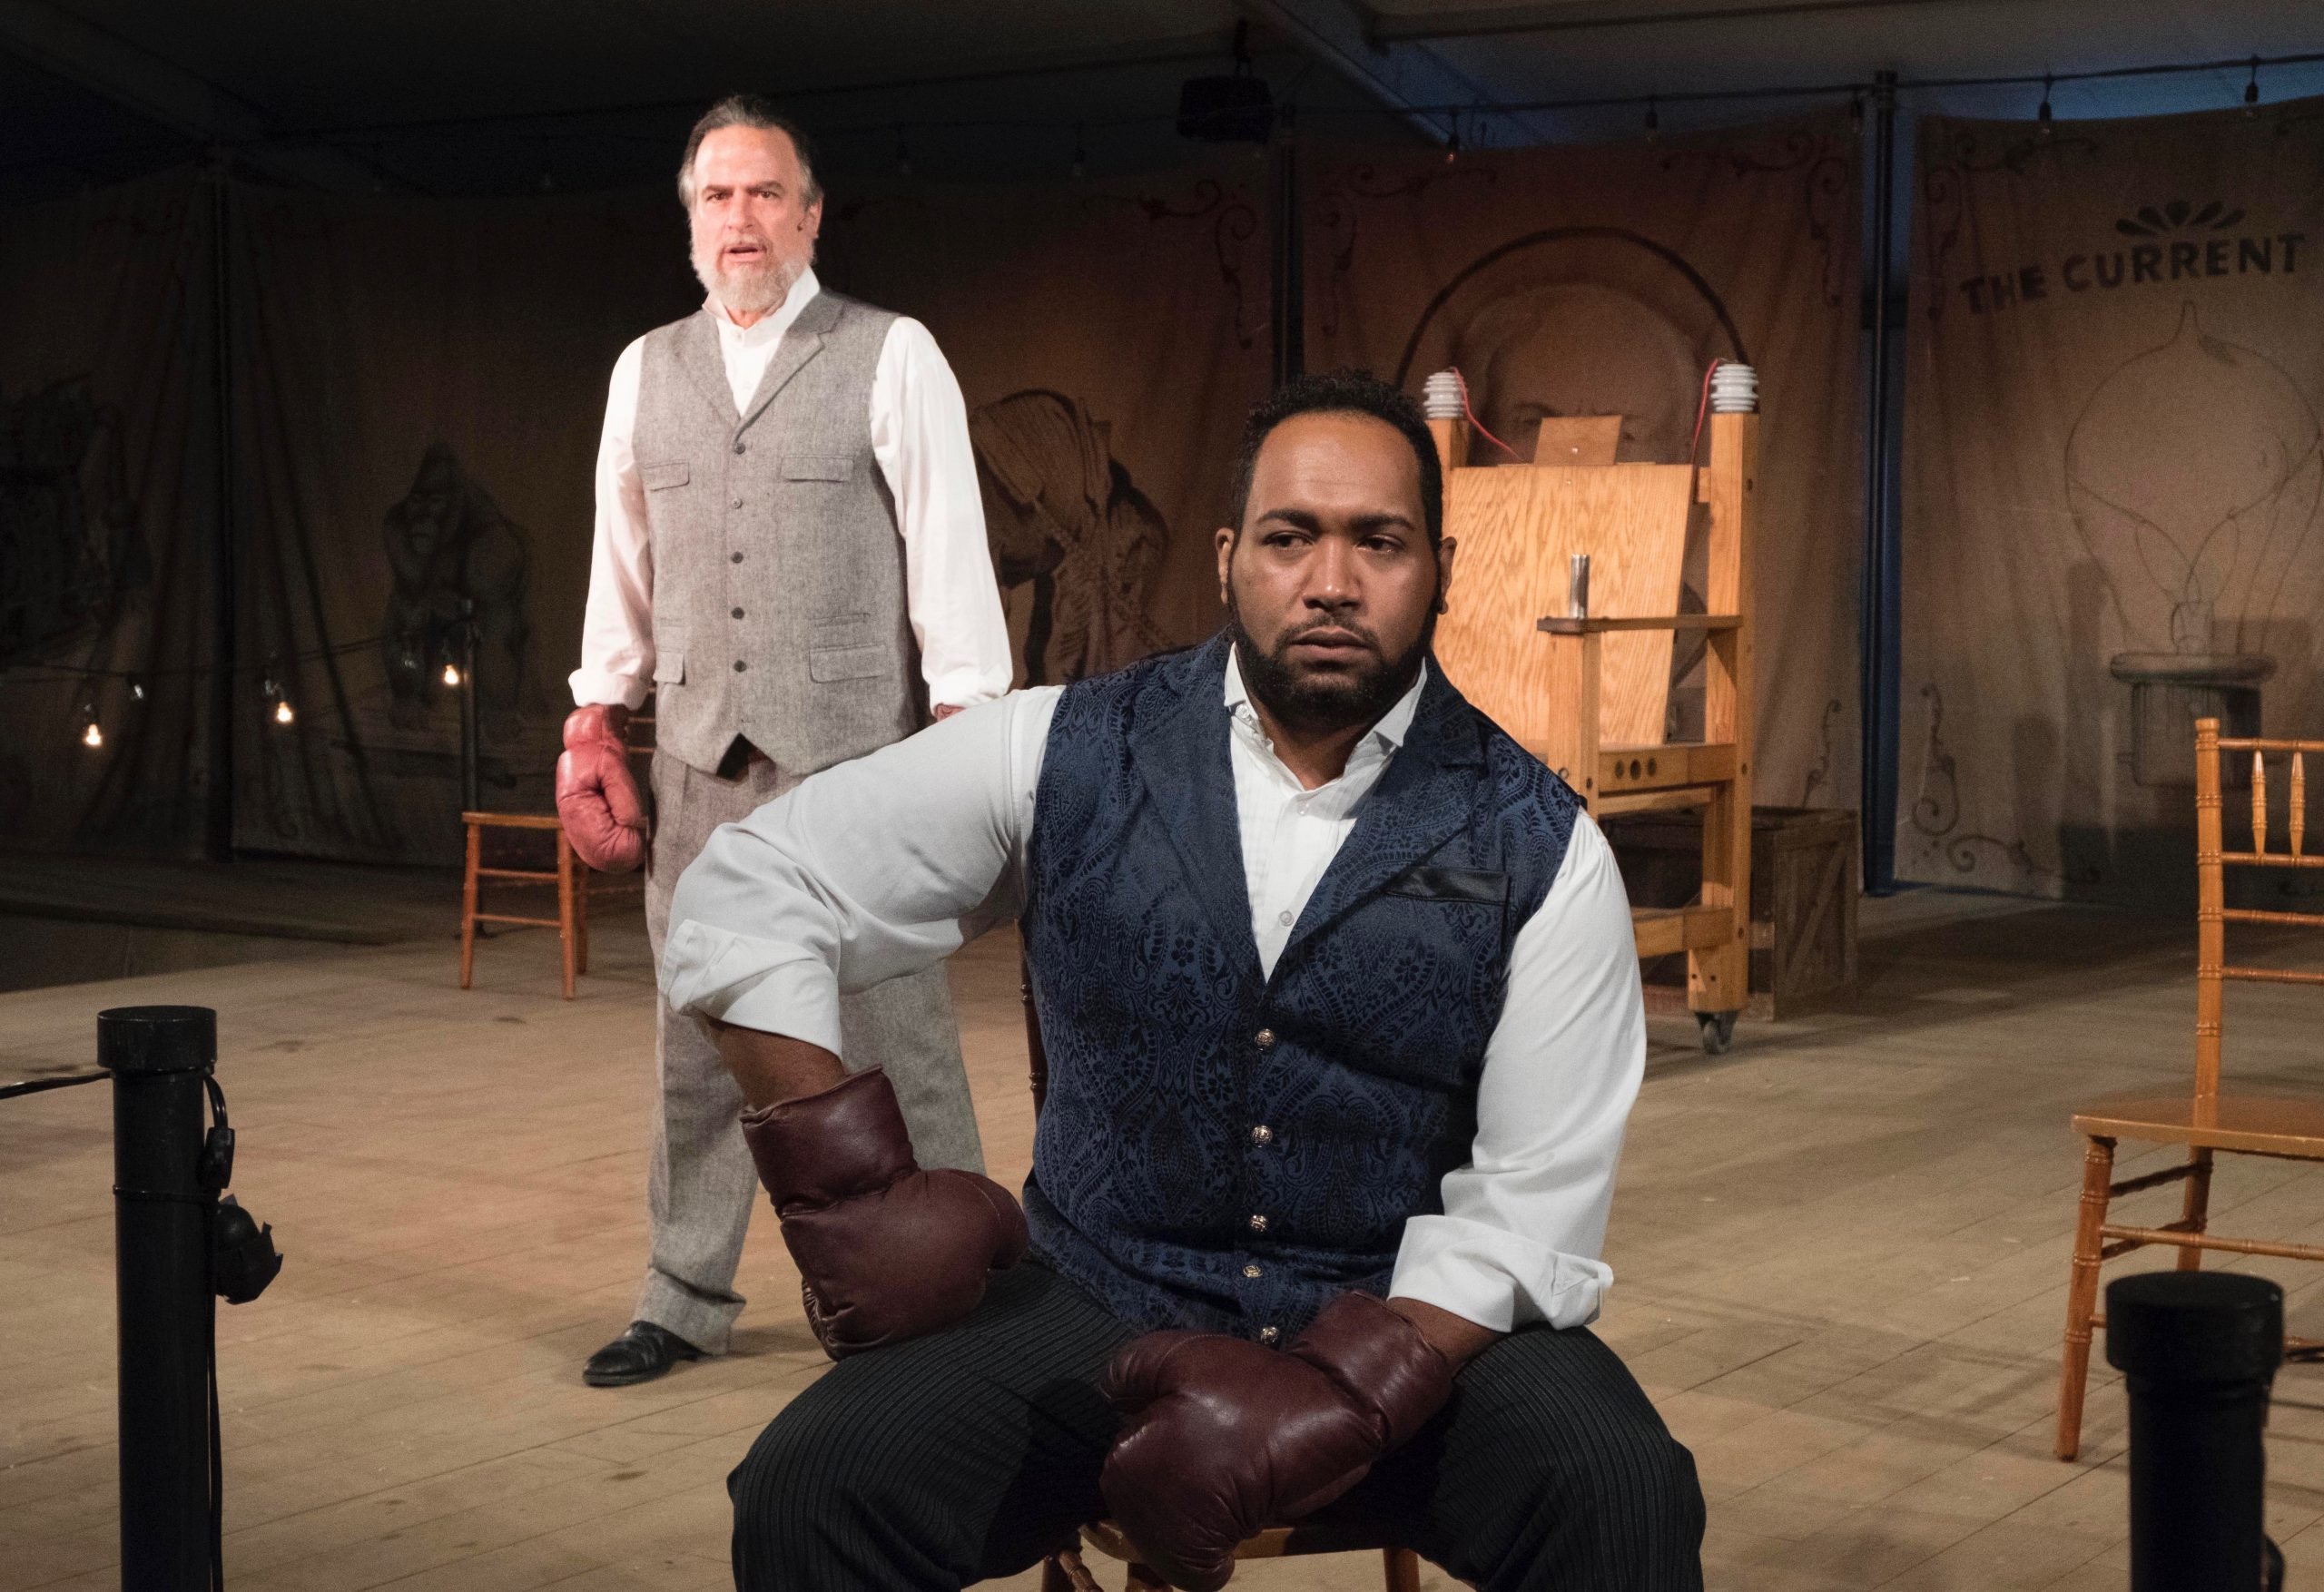 George Westinghouse—played by Billy Mason, front and center—contemplates his next move in 'The Current War' while Thomas Edison (Daniel Krell) hovers menacingly.